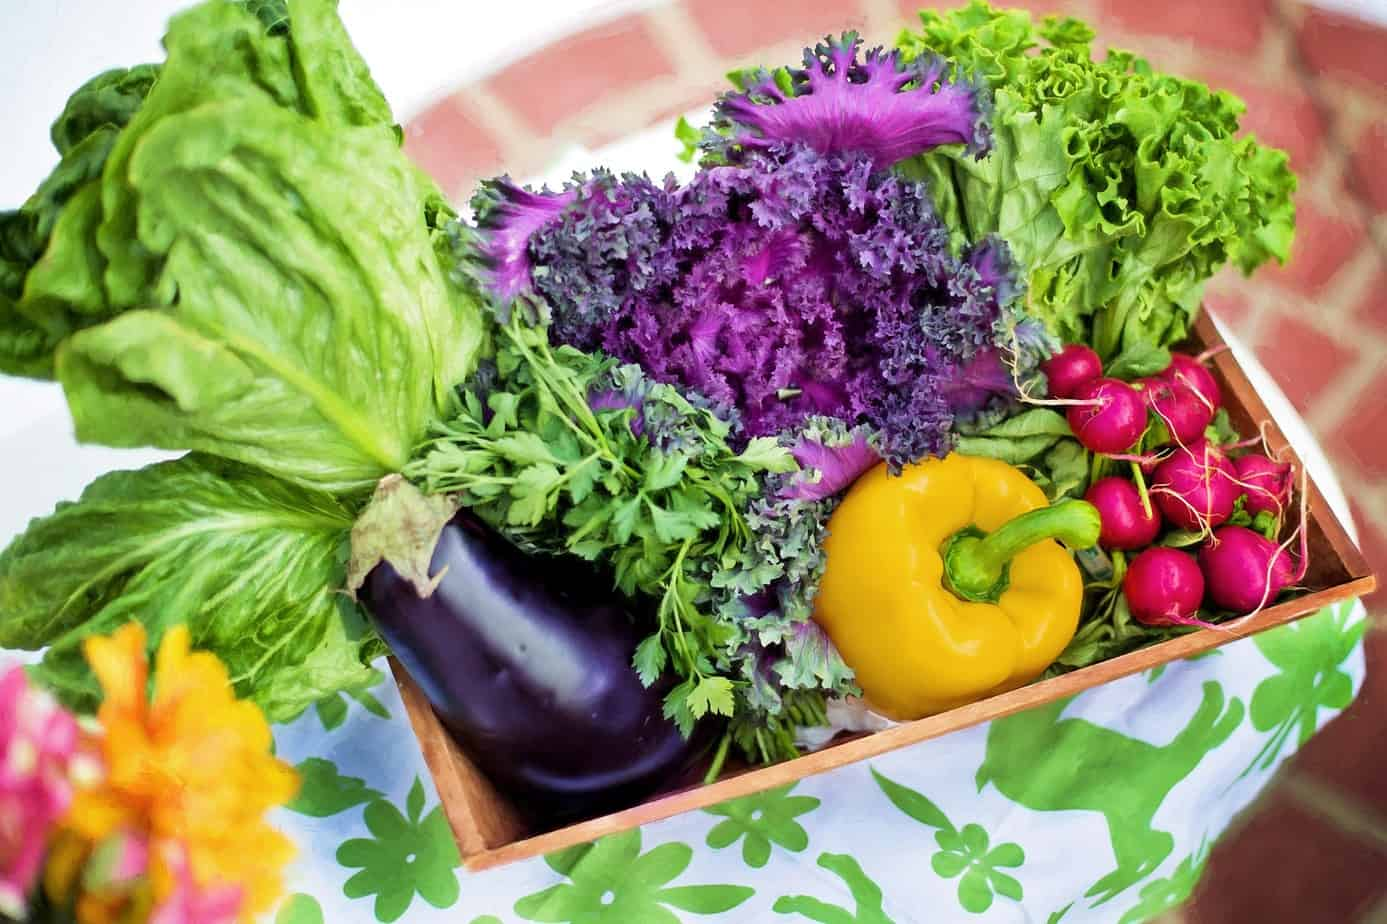 How to Grow Vegetables in Containers – 5 Simple Steps to Tasty Veggies All Year Round